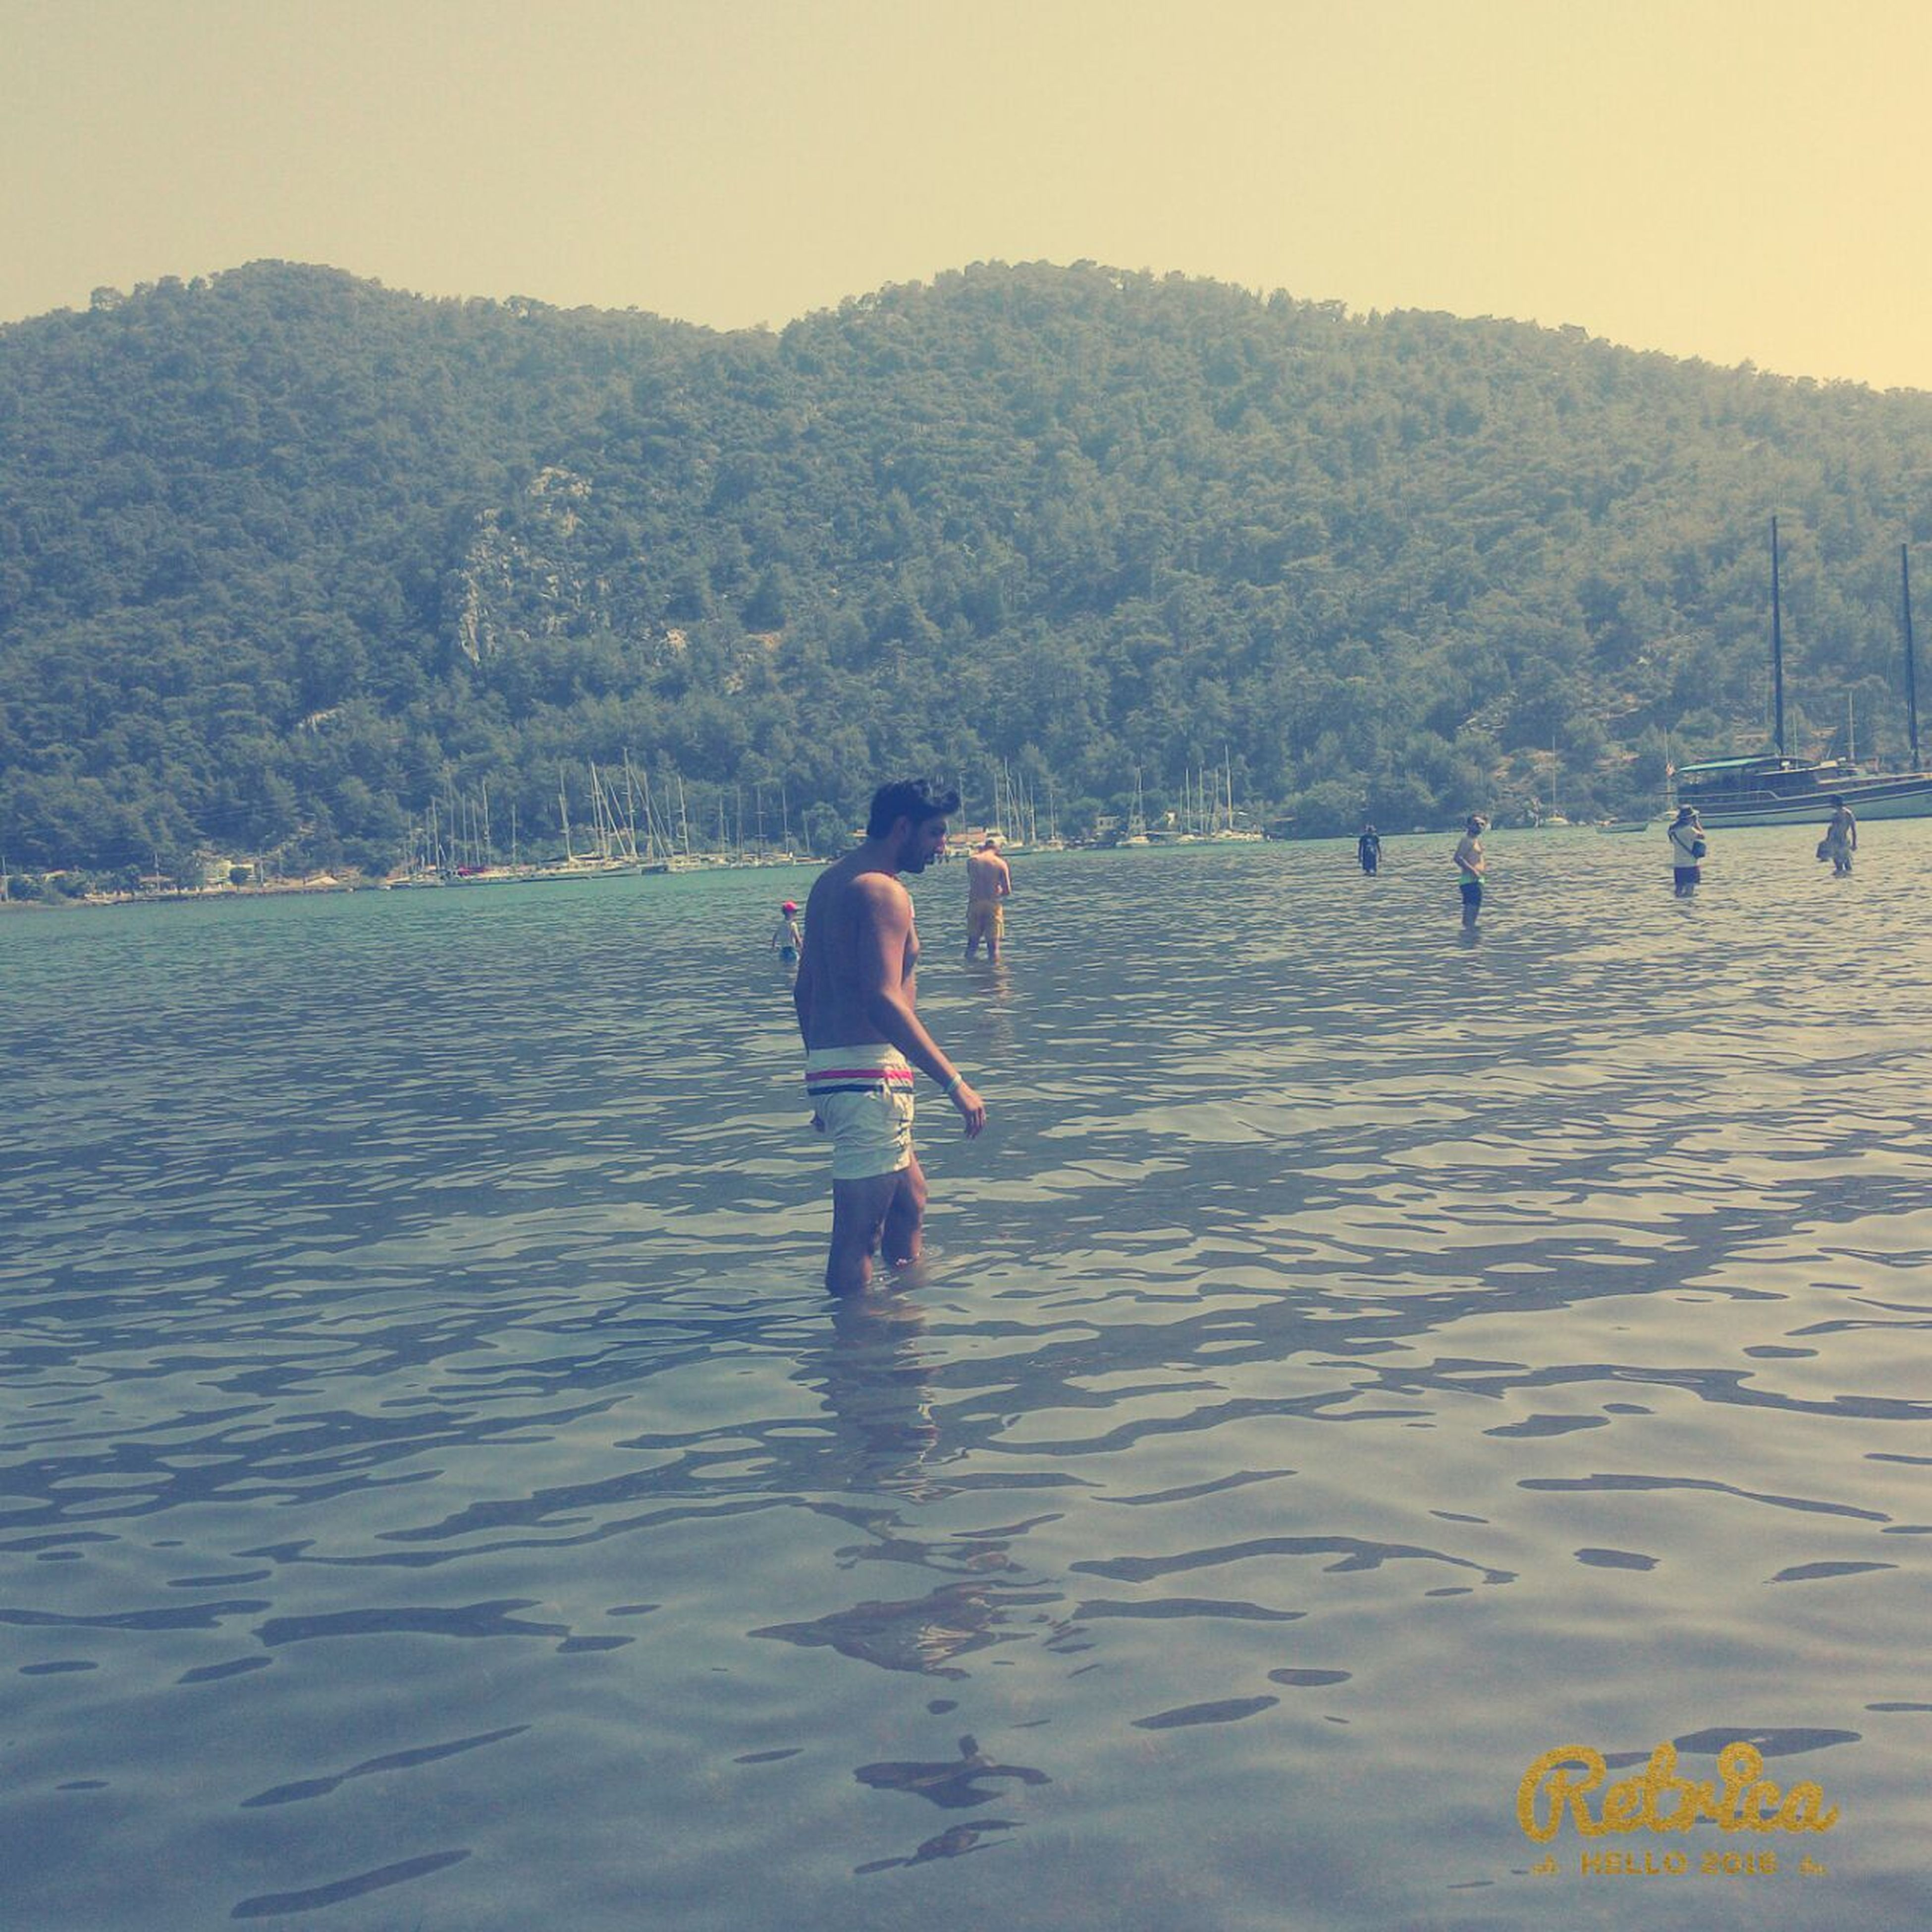 Marmaris Kizkumubeach Beauty In Nature Only Men Floating On Water Water Lake Young Adult People Nature Reflection Adults Only Adult Full Length One Person Vacations Outdoors One Man Only Day First Eyeem Photo